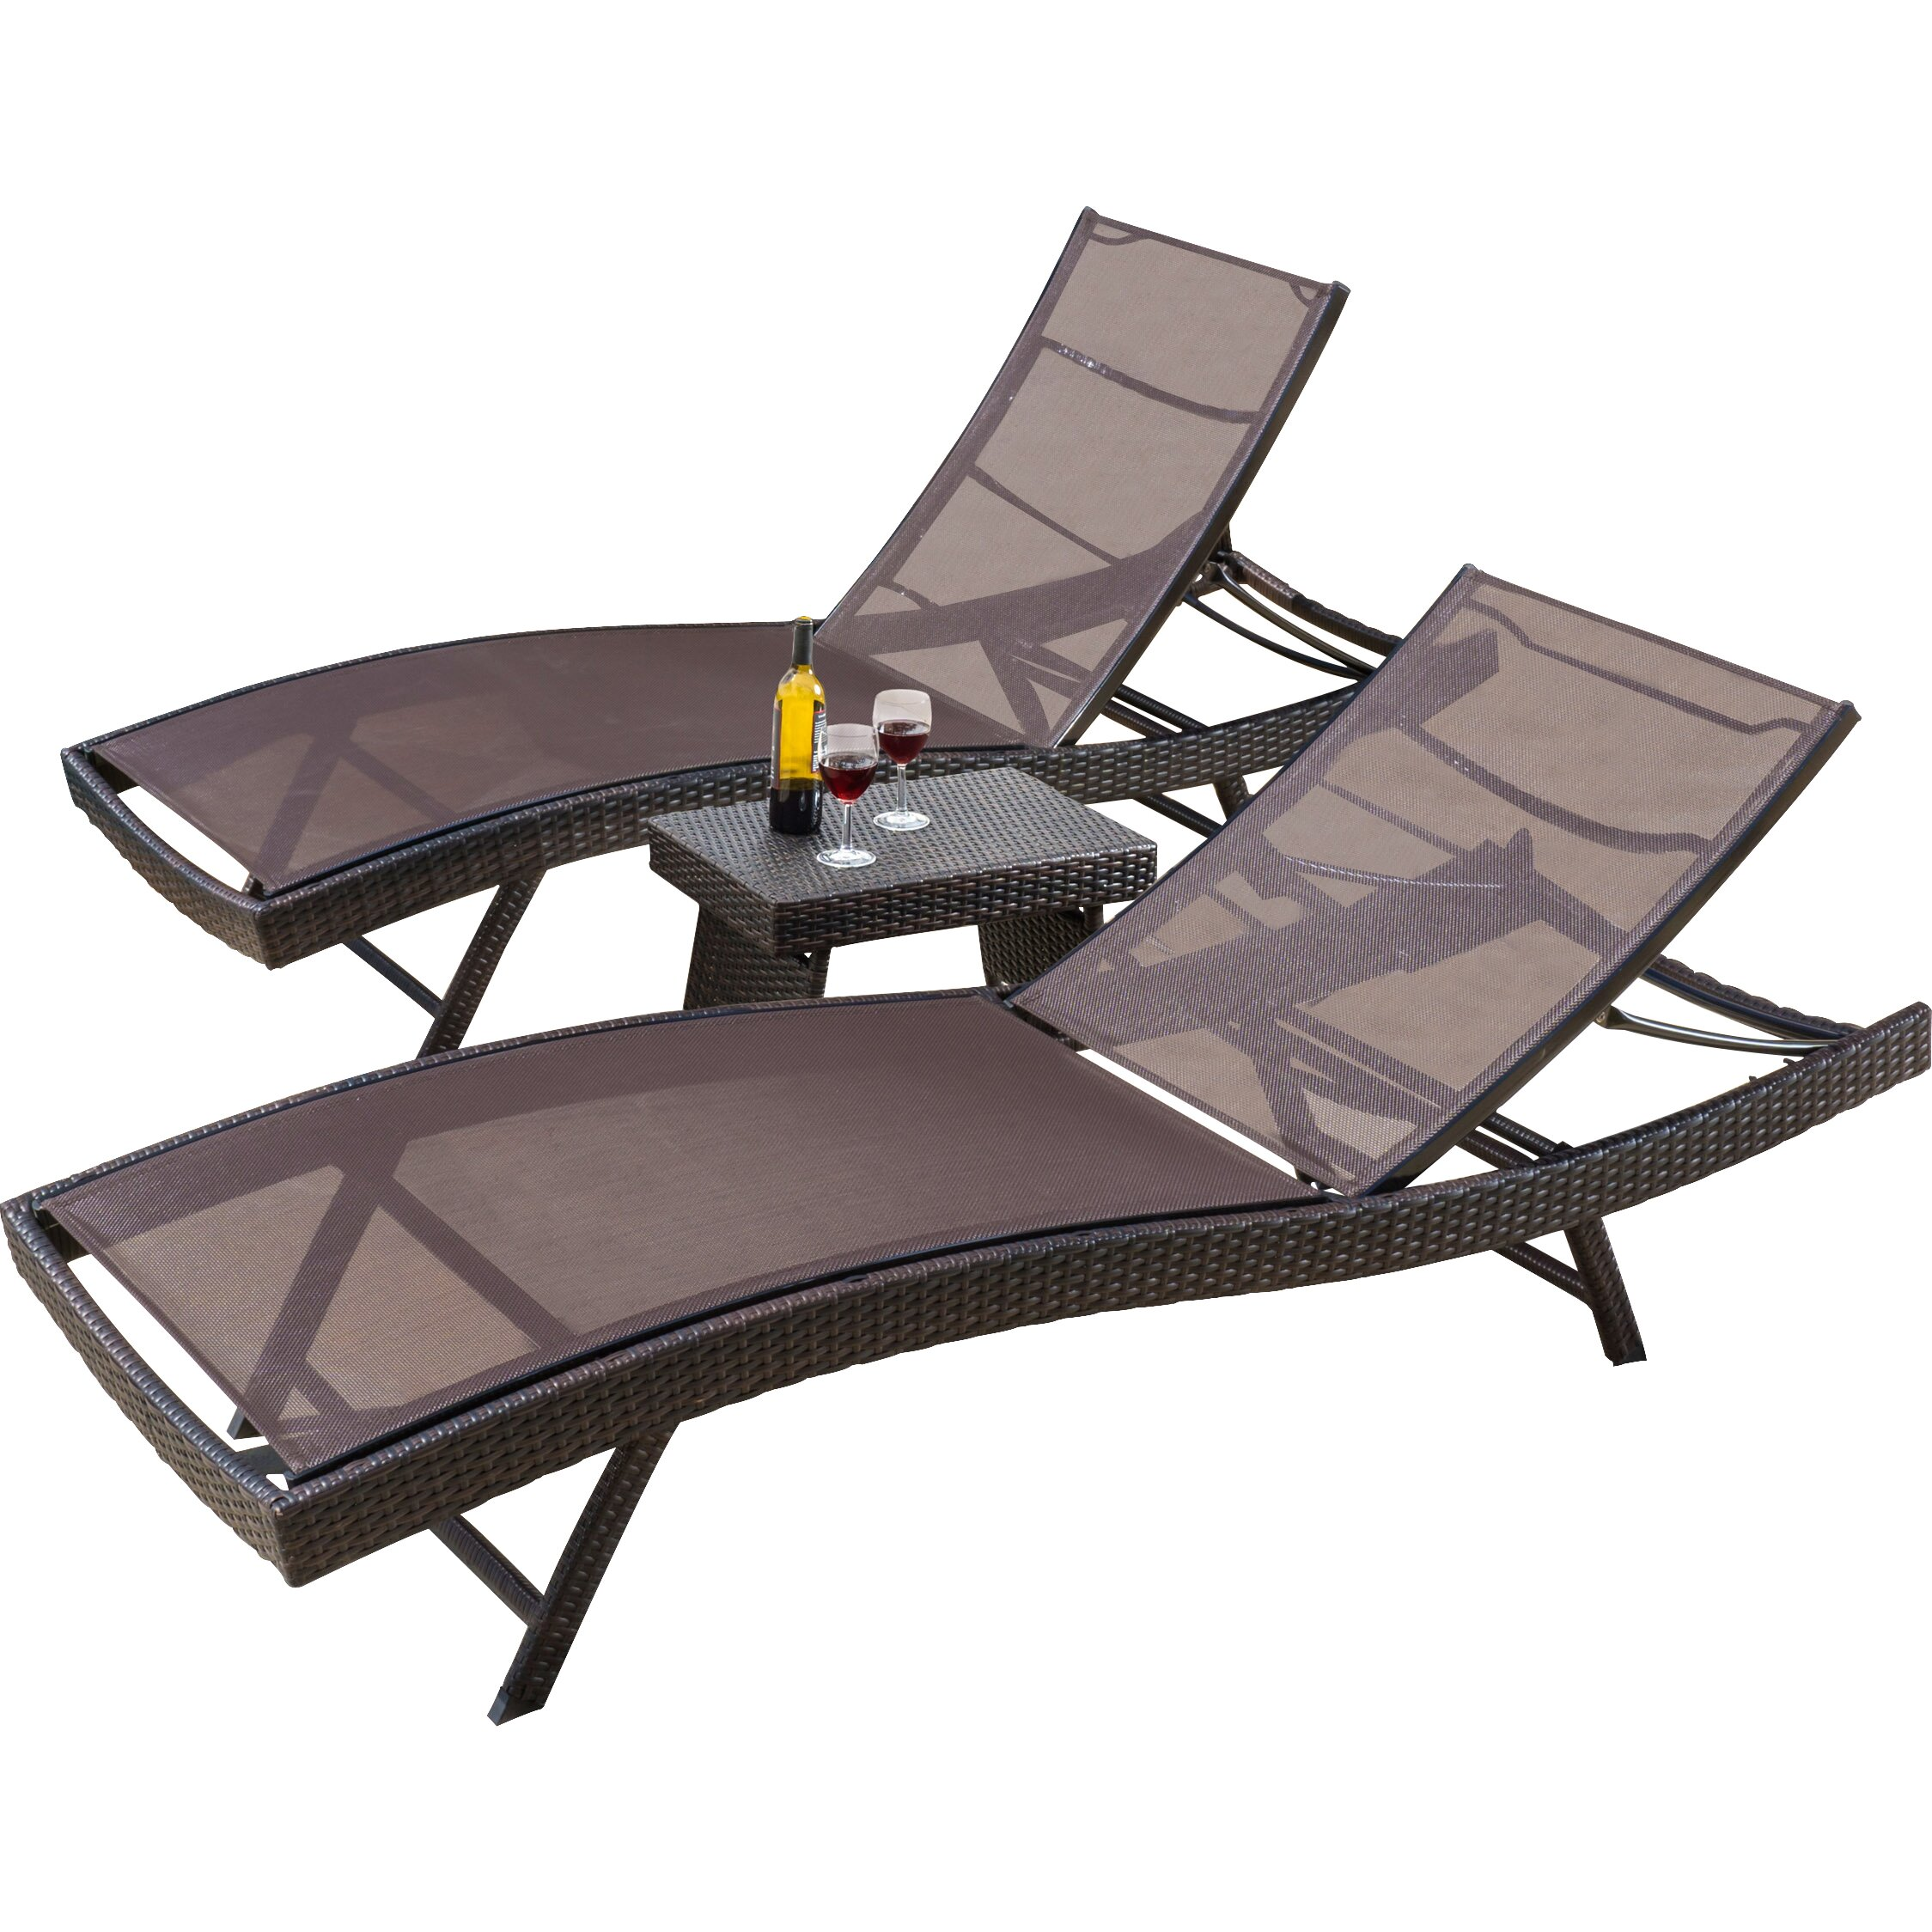 Home loft concepts halulu 3 piece chaise lounge set for 3 in 1 beach chaise lounge